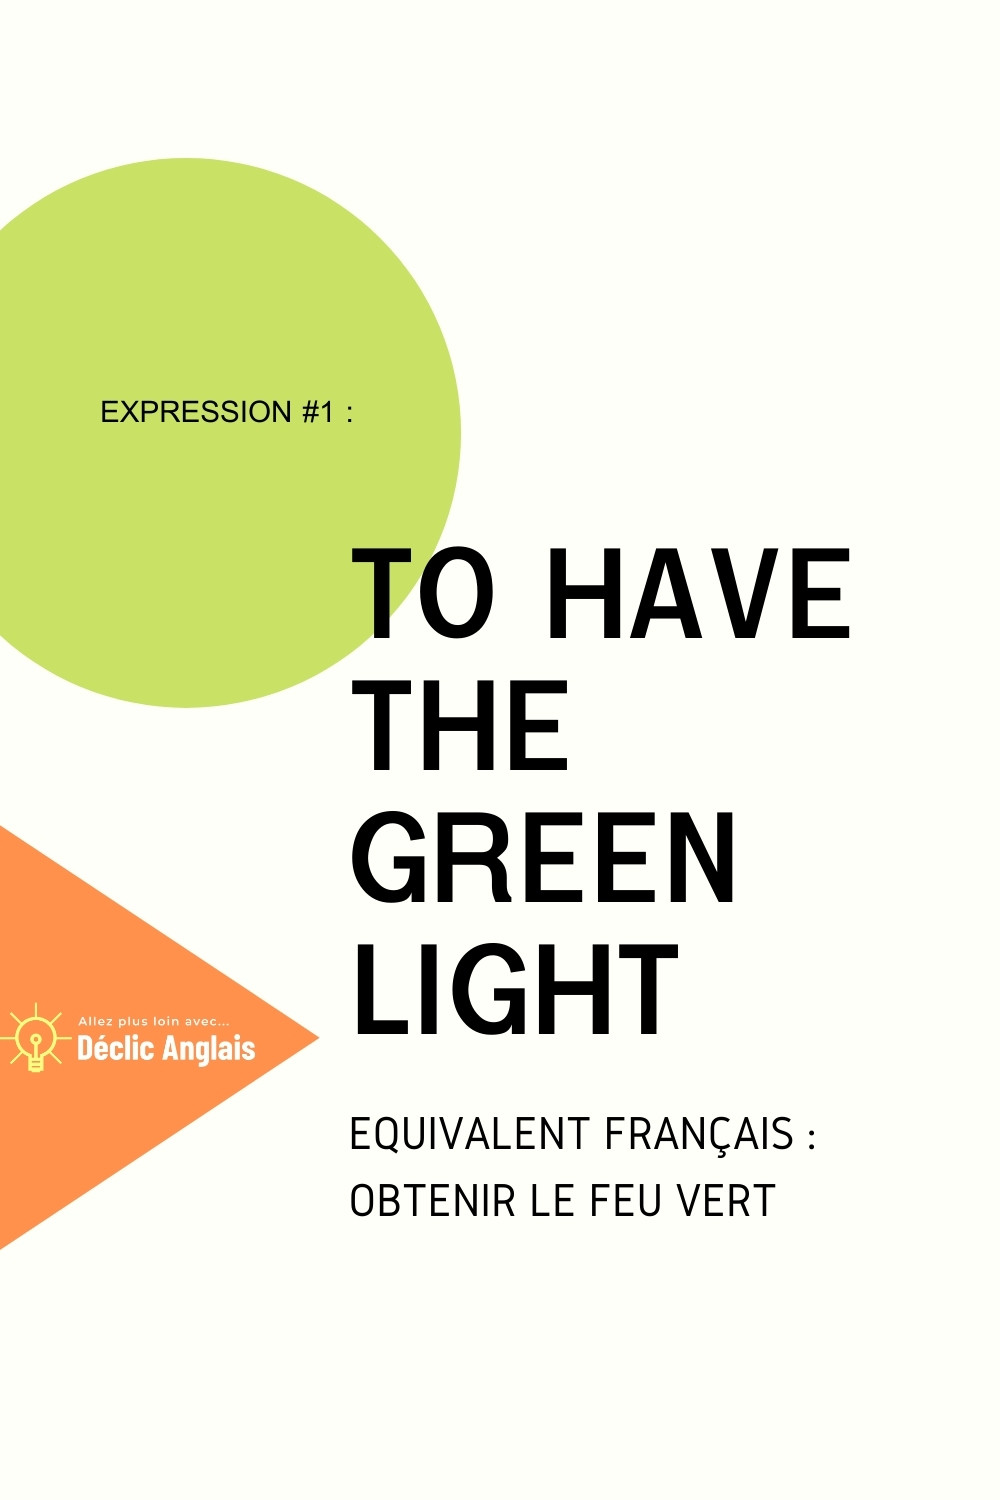 English-expression-to-have-the-green-light-explained-in-french